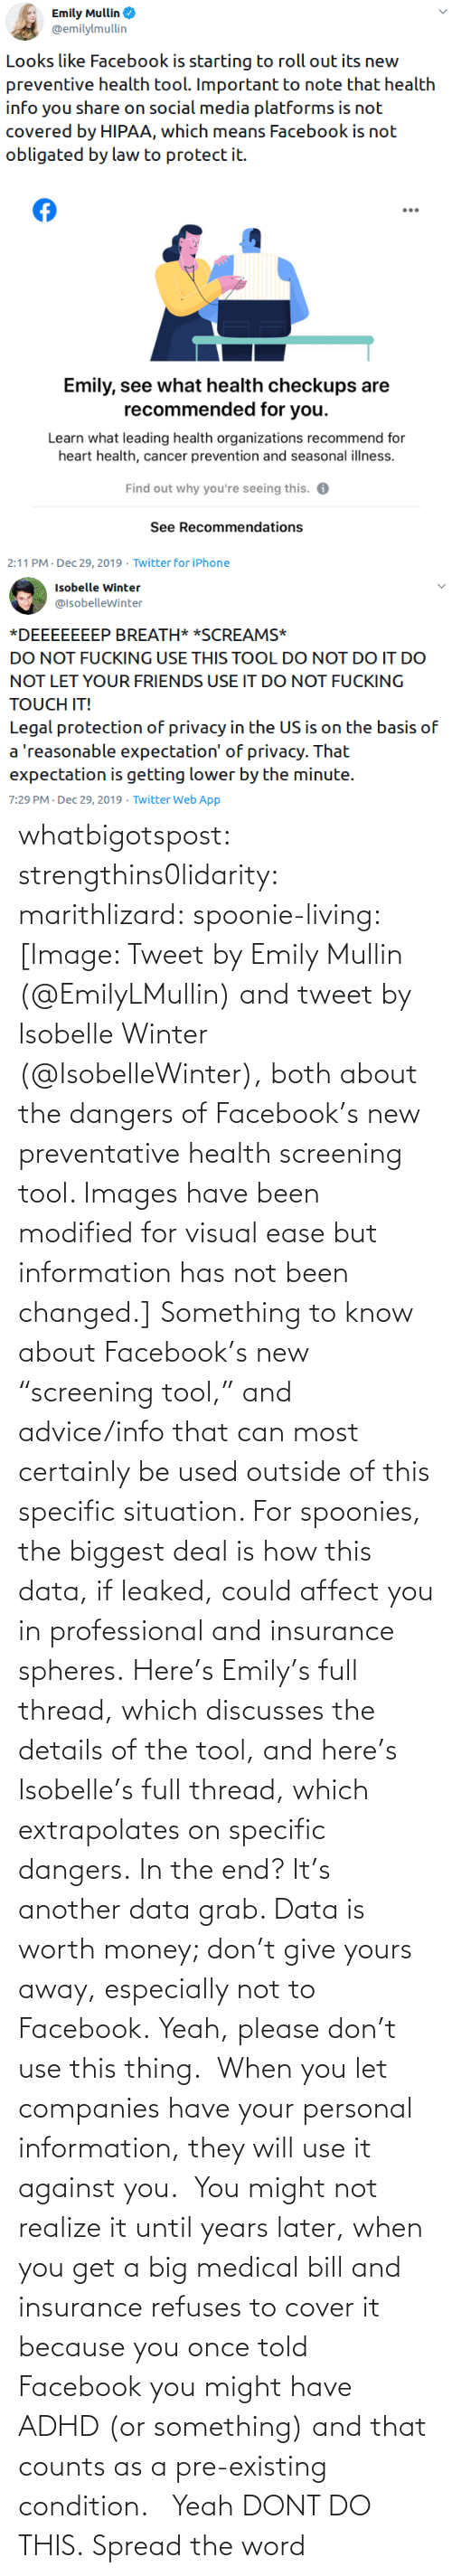 """Please Don: whatbigotspost: strengthins0lidarity:  marithlizard:  spoonie-living:  [Image: Tweet by Emily Mullin (@EmilyLMullin) and tweet by Isobelle Winter (@IsobelleWinter), both about the dangers of Facebook's new preventative health screening tool. Images have been modified for visual ease but information has not been changed.] Something to know about Facebook's new """"screening tool,"""" and advice/info that can most certainly be used outside of this specific situation.  For spoonies, the biggest deal is how this data, if leaked, could affect you in professional and insurance spheres. Here's Emily's full thread, which discusses the details of the tool, and here's Isobelle's full thread, which extrapolates on specific dangers. In the end? It's another data grab. Data is worth money; don't give yours away, especially not to Facebook.  Yeah, please don't use this thing. When you let companies have your personal information, they will use it against you. You might not realize it until years later, when you get a big medical bill and insurance refuses to cover it because you once told Facebook you might have ADHD (or something) and that counts as a pre-existing condition.    Yeah DONT DO THIS.    Spread the word"""